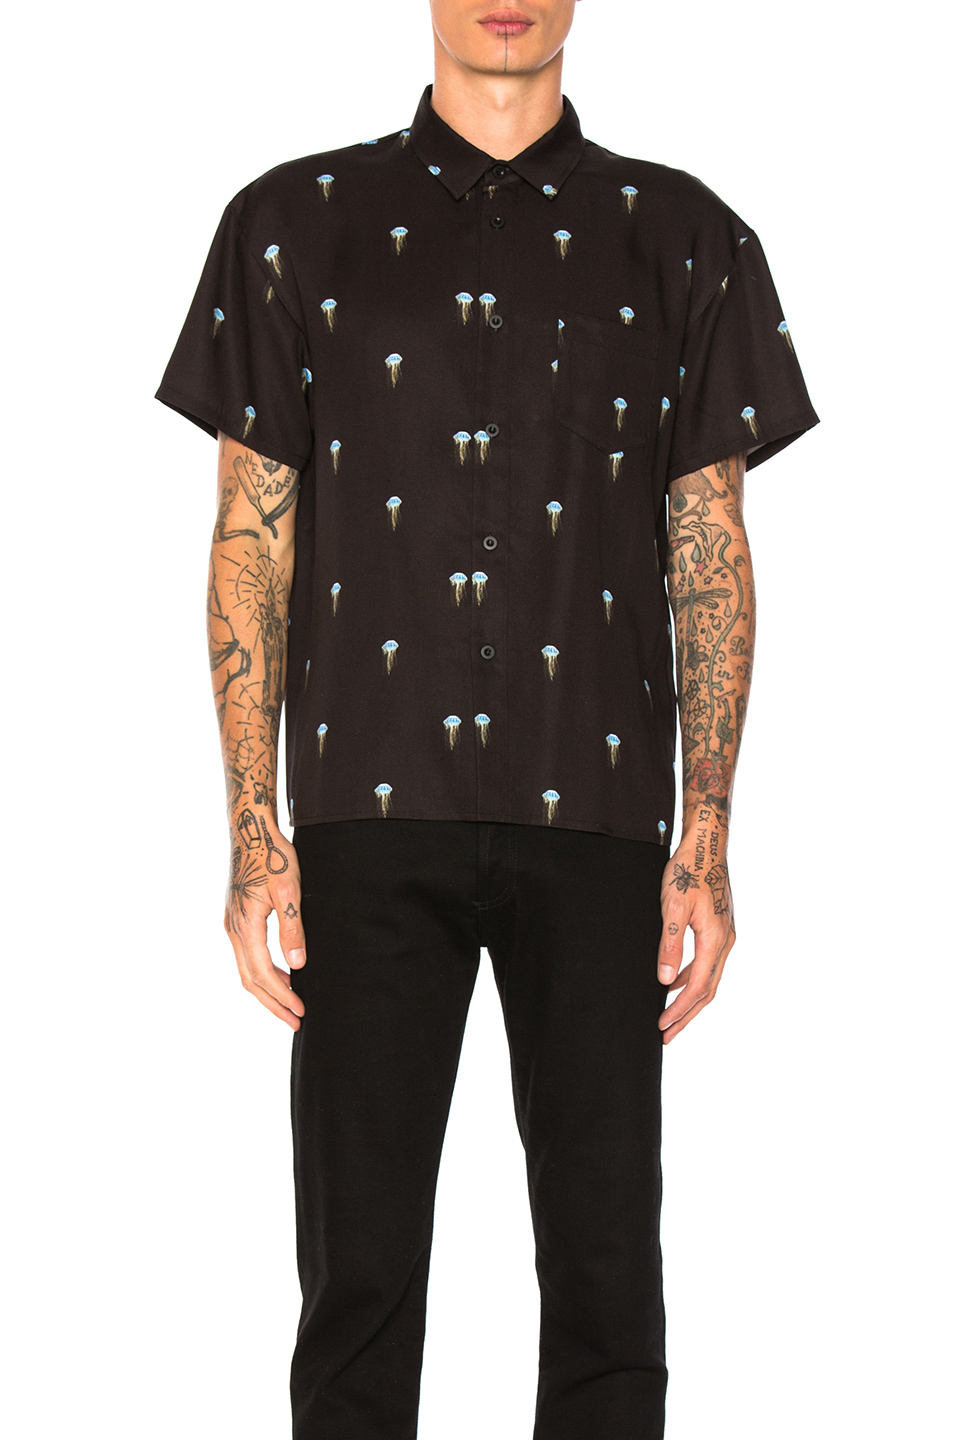 JOHN ELLIOTT Bowling Shirt in Abstract,Black,Blue